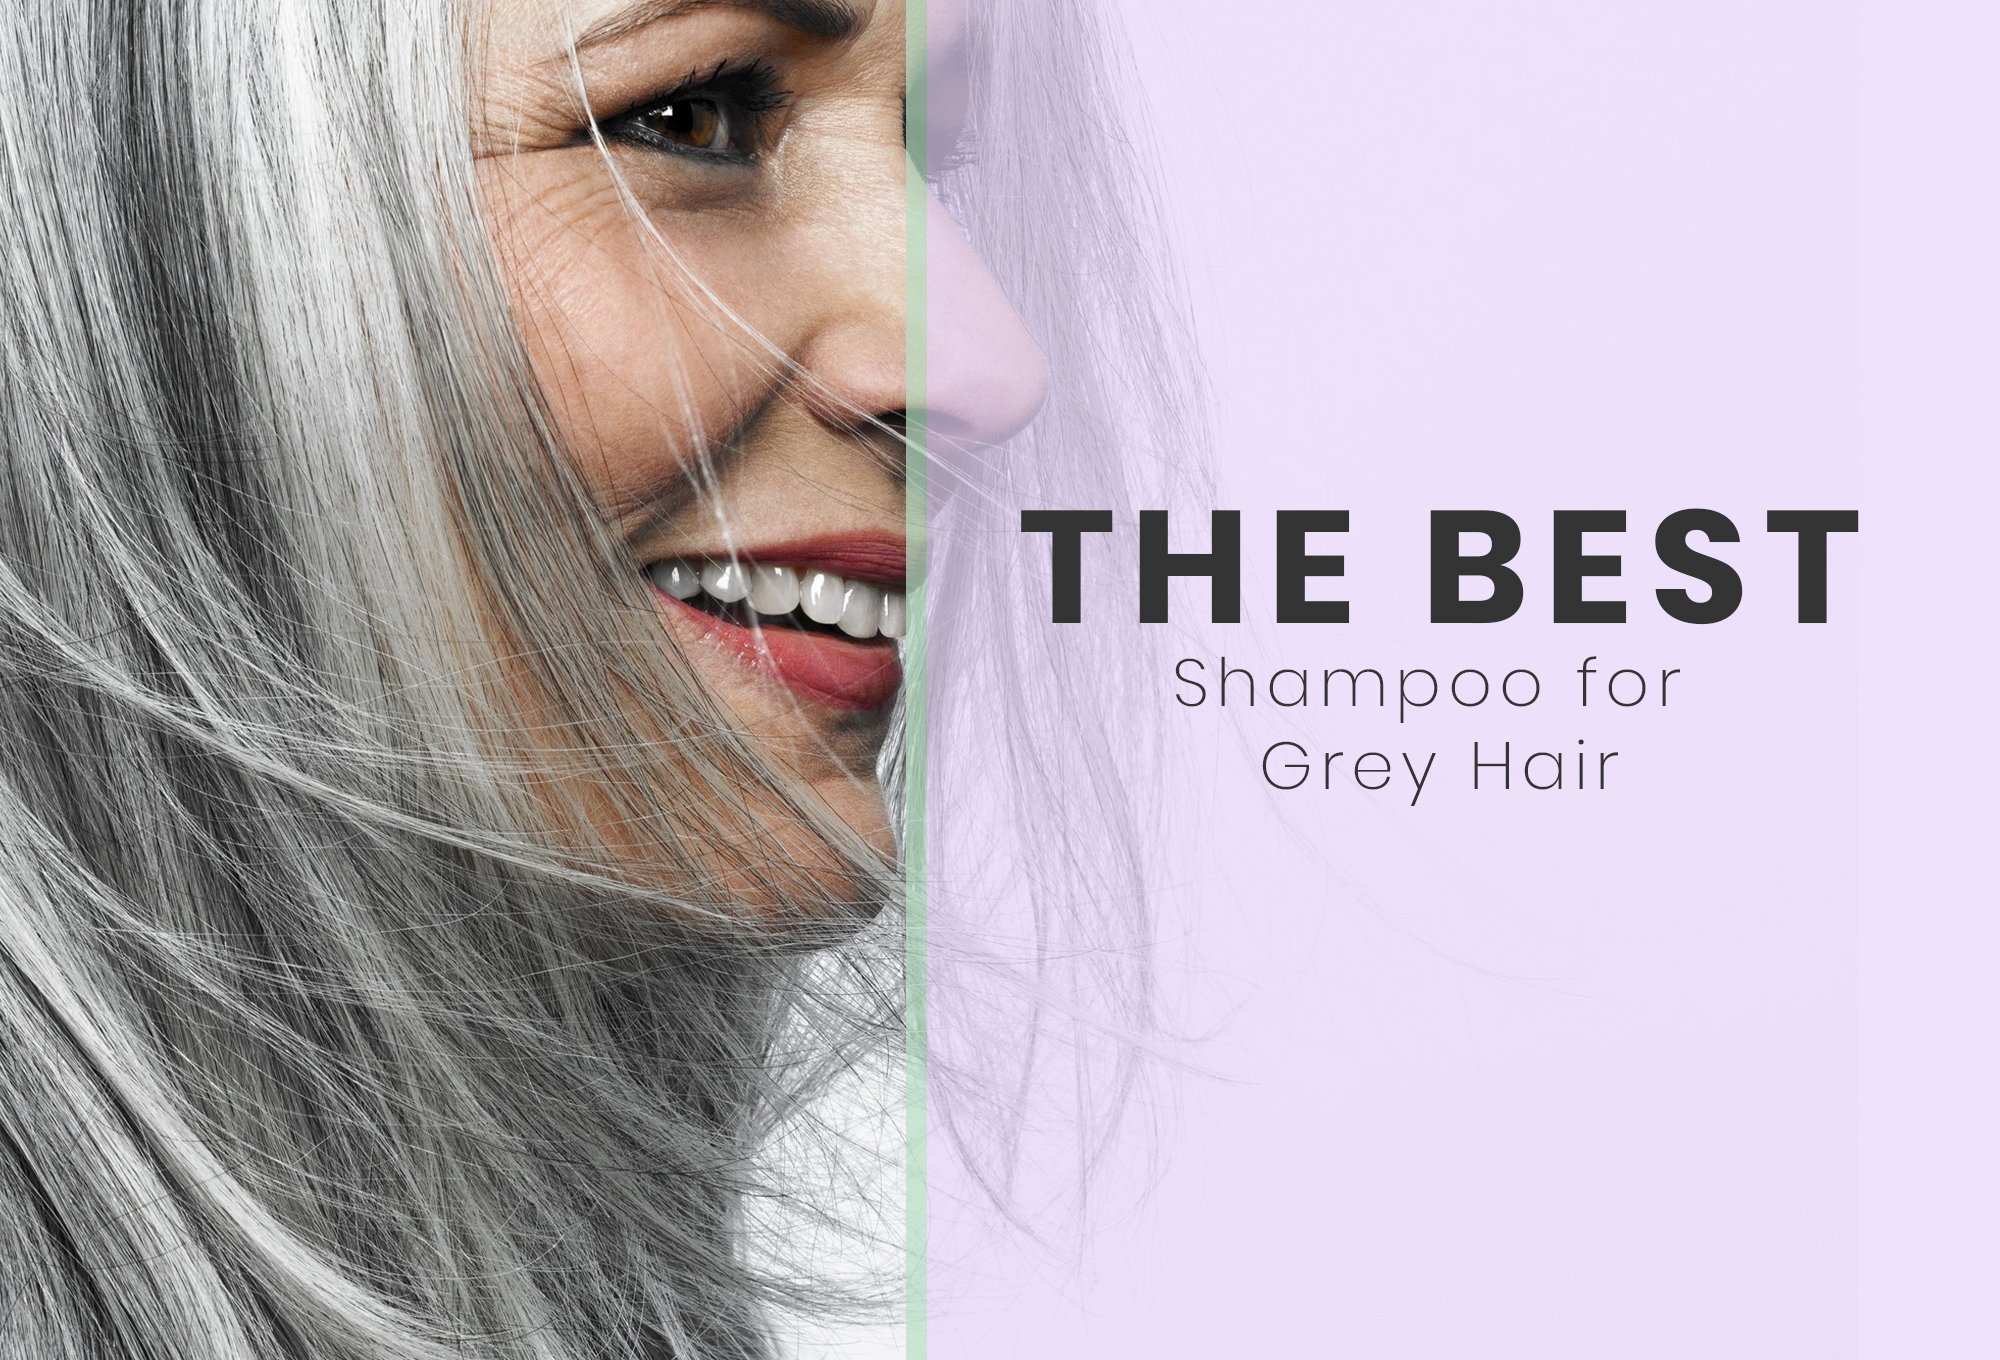 Best Shampoo For Grey Hair 2019 Best Shampoo for Grey Hair – August, 2019 Reviews & Buyers Guide